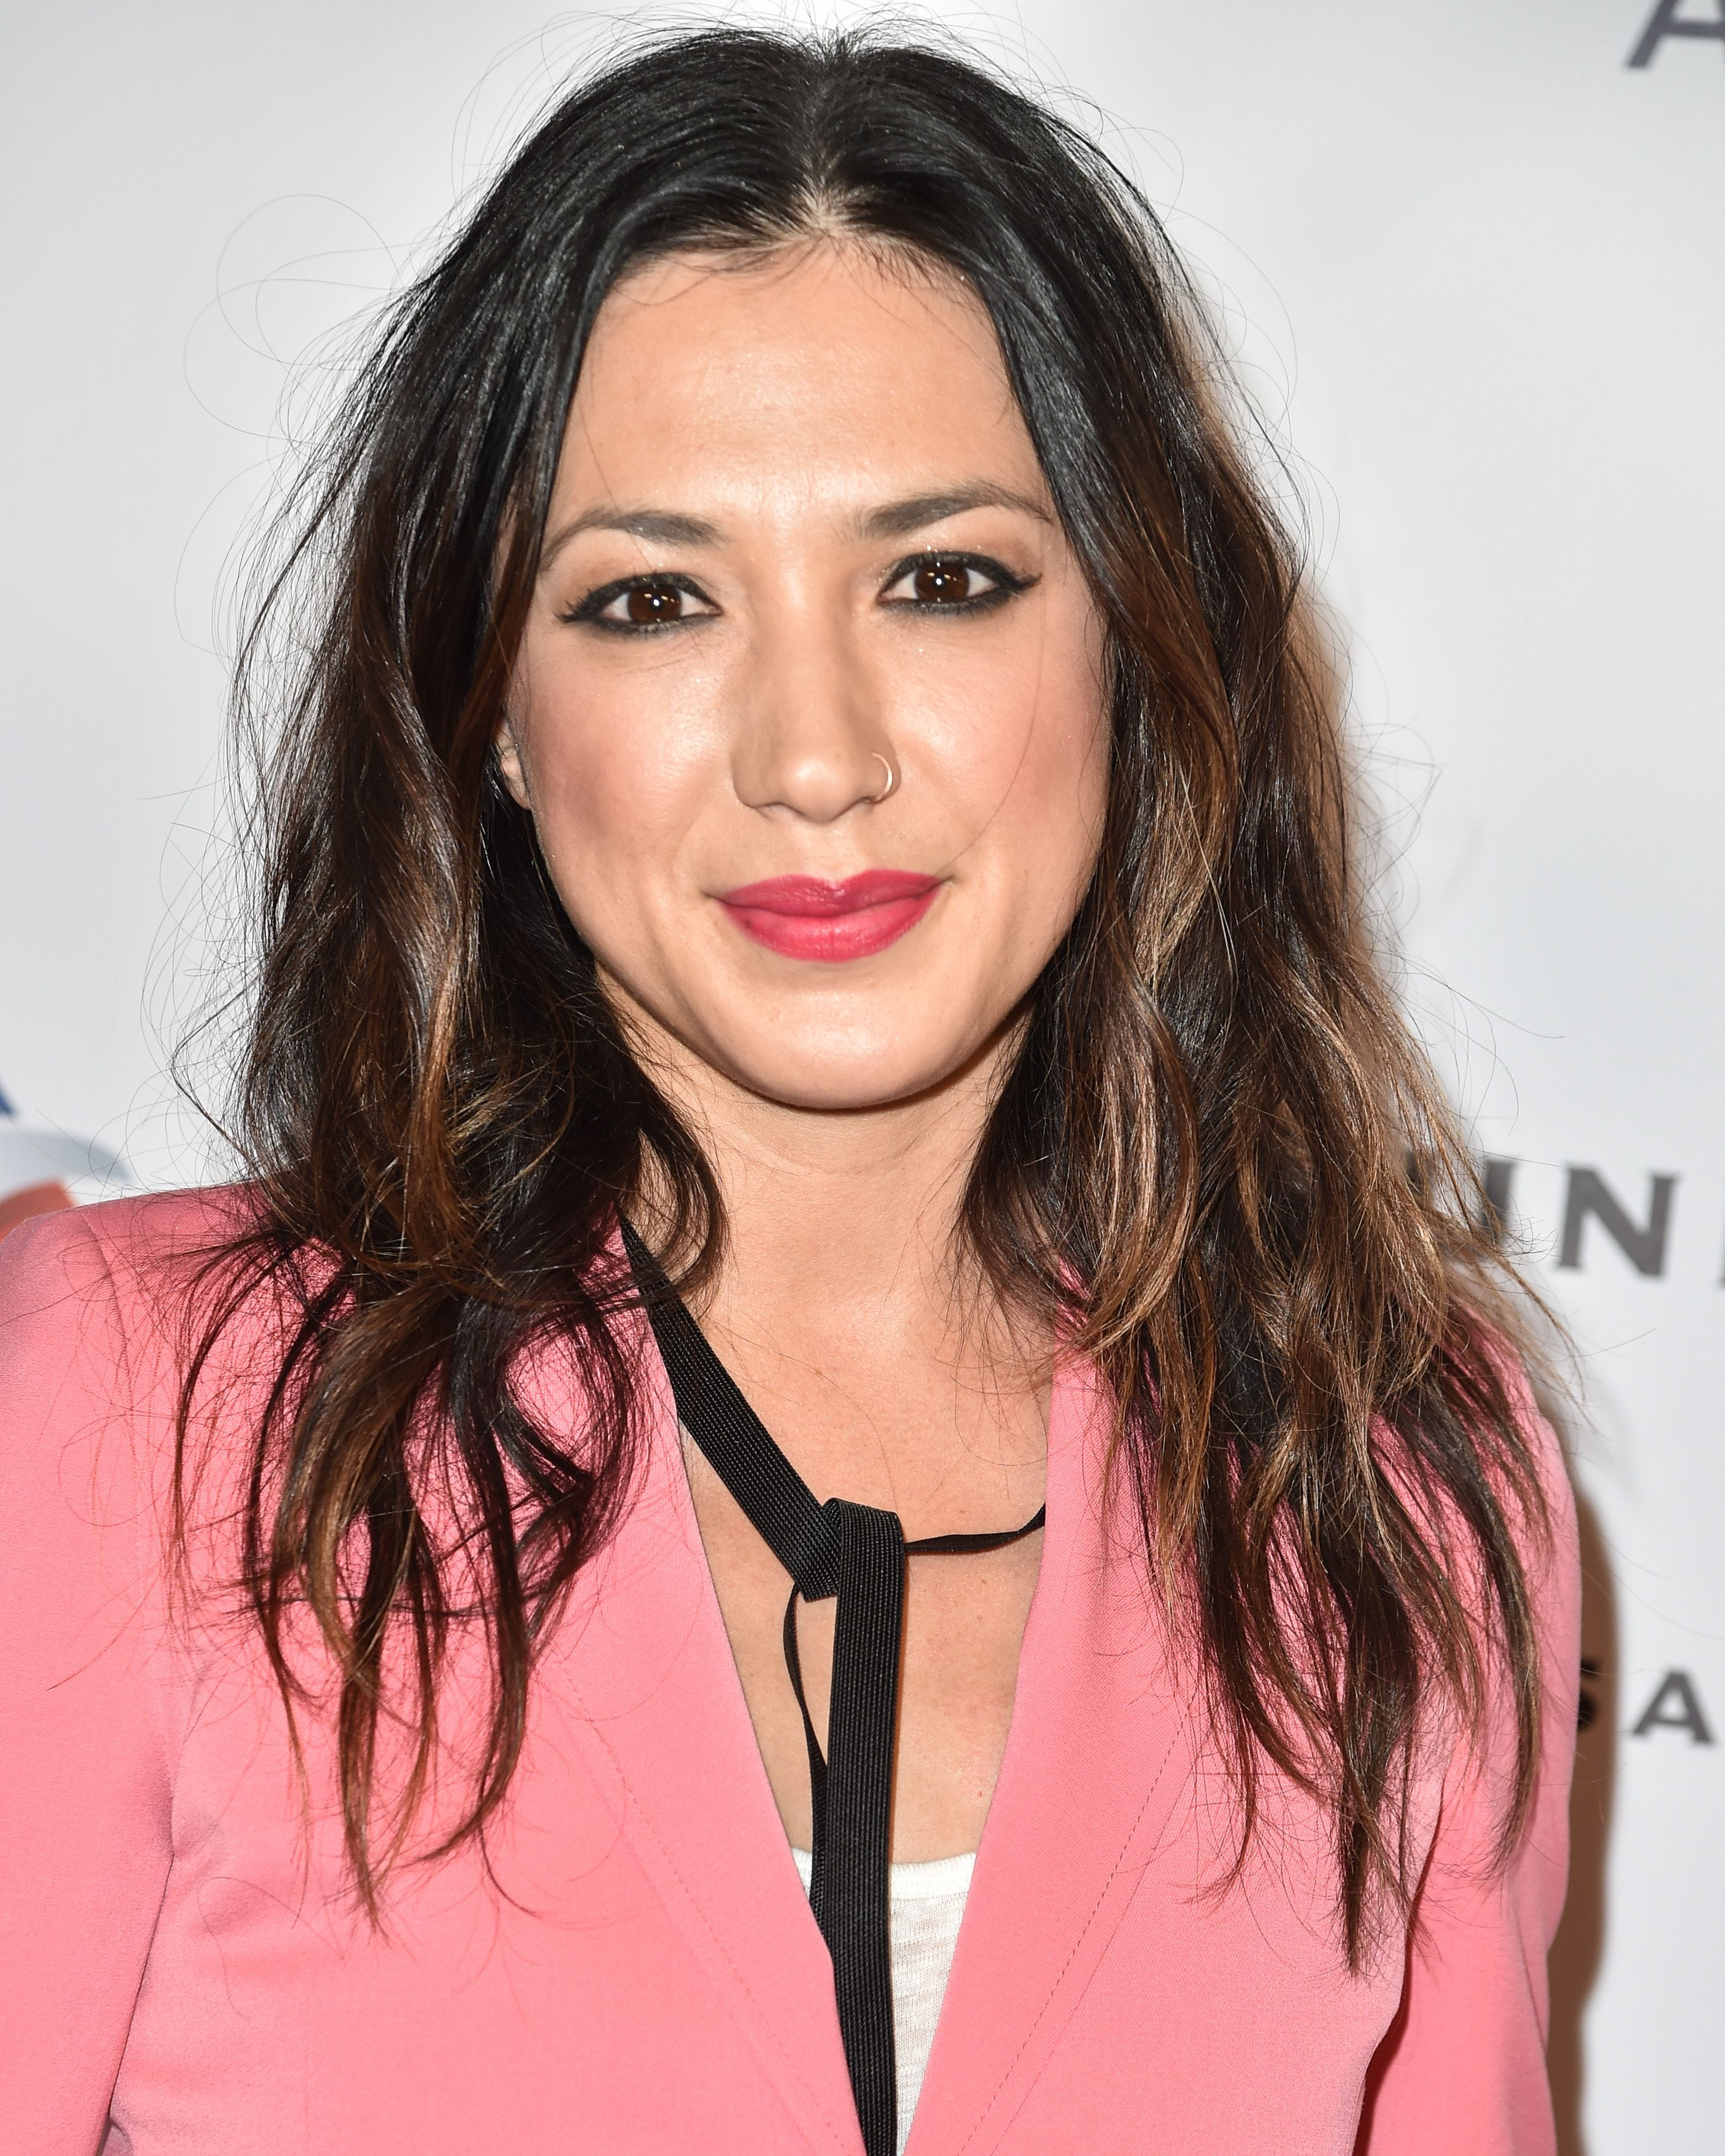 After 14 Long Years, Michelle Branch Is Back With A New Album